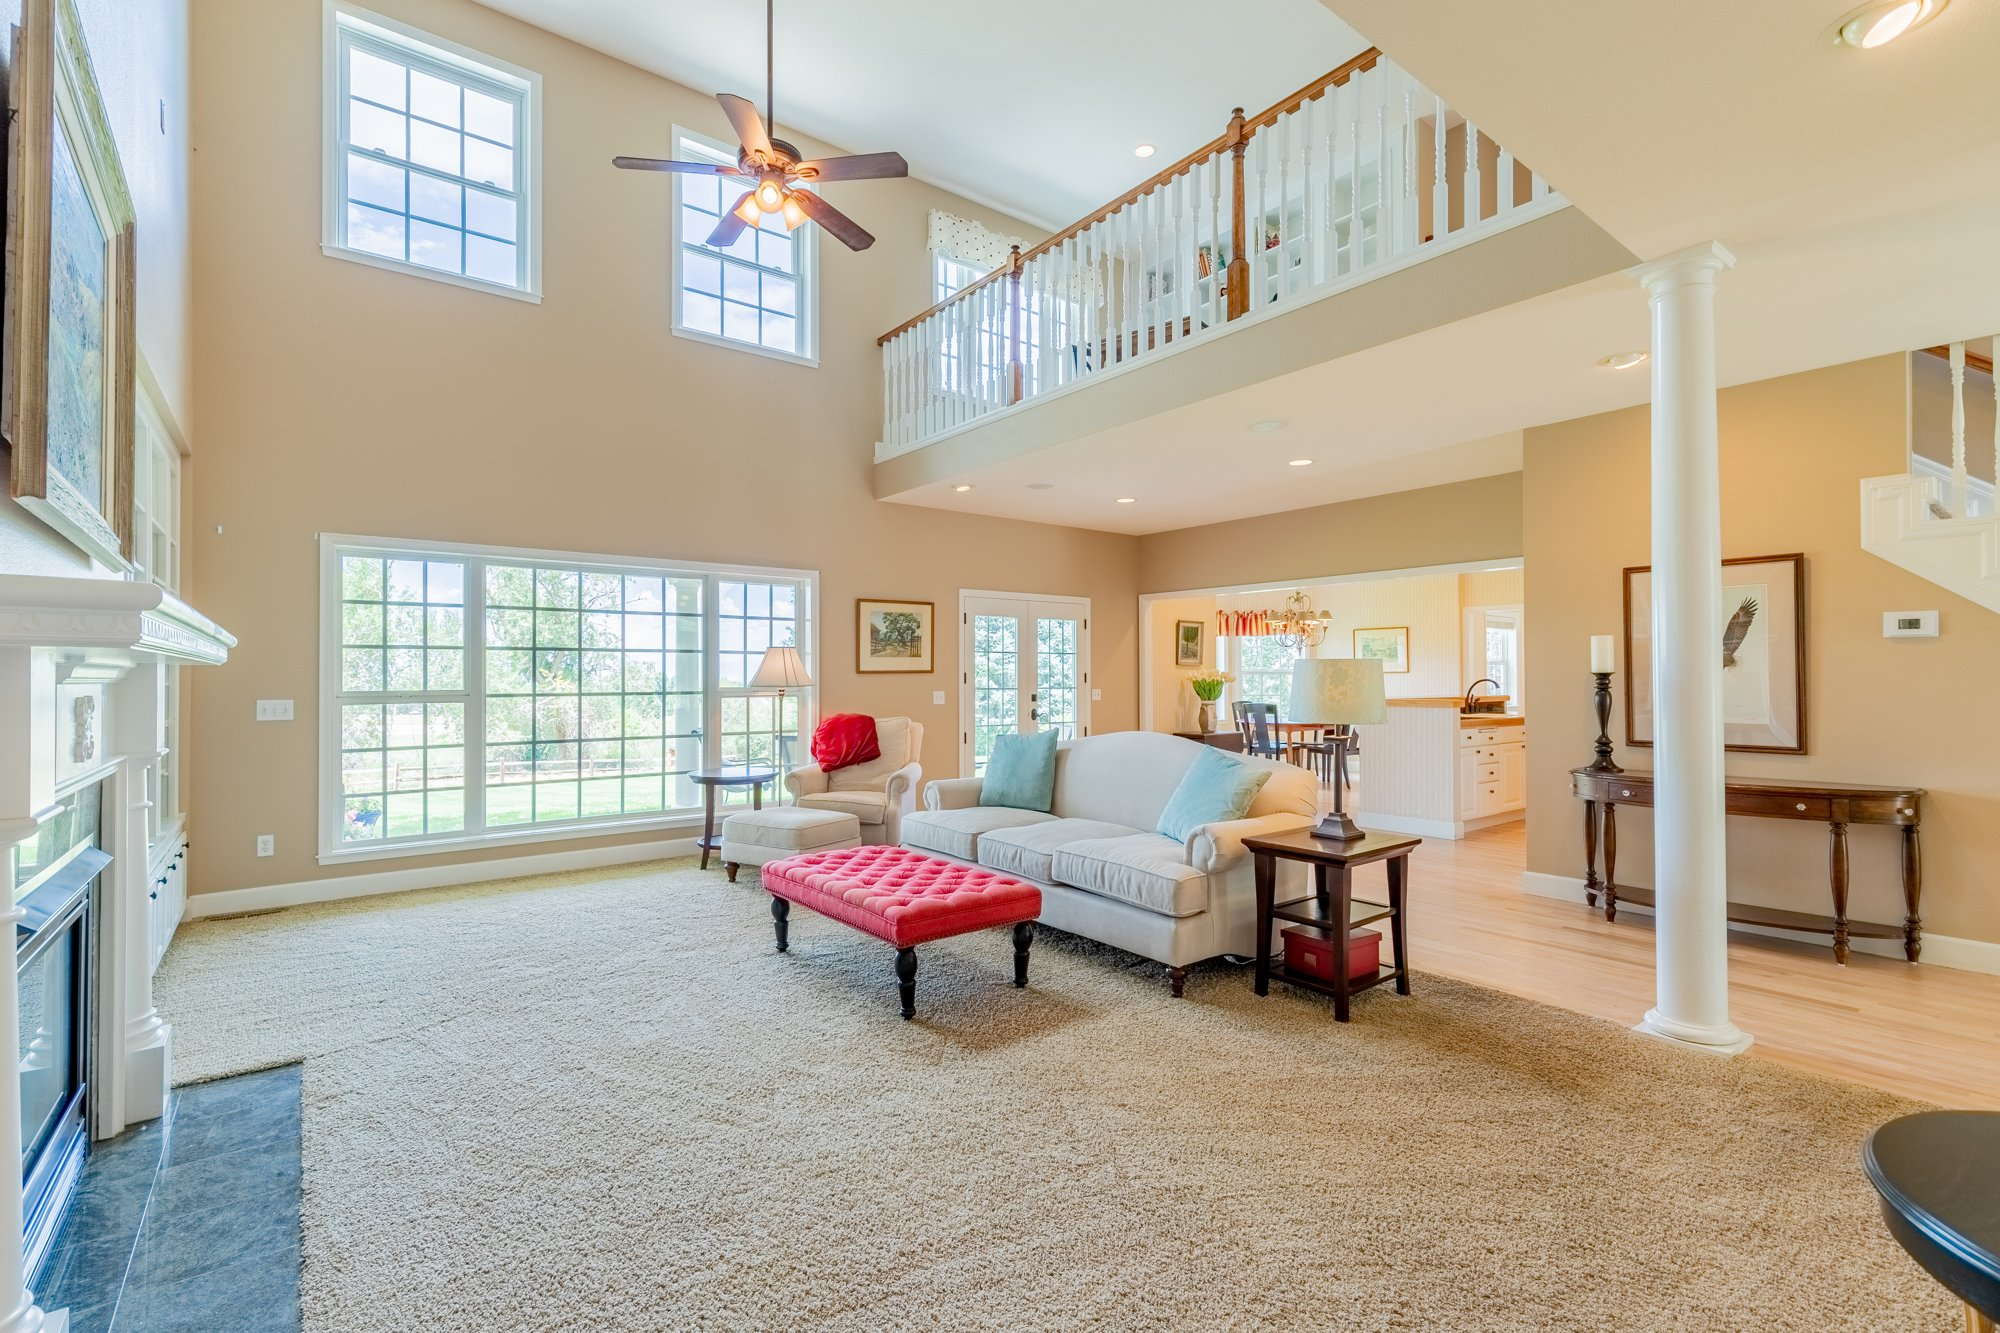 Living Room with Carpet - 2049 Brook Way Montrose, Co 81403 - Atha Team Luxury Real Estate